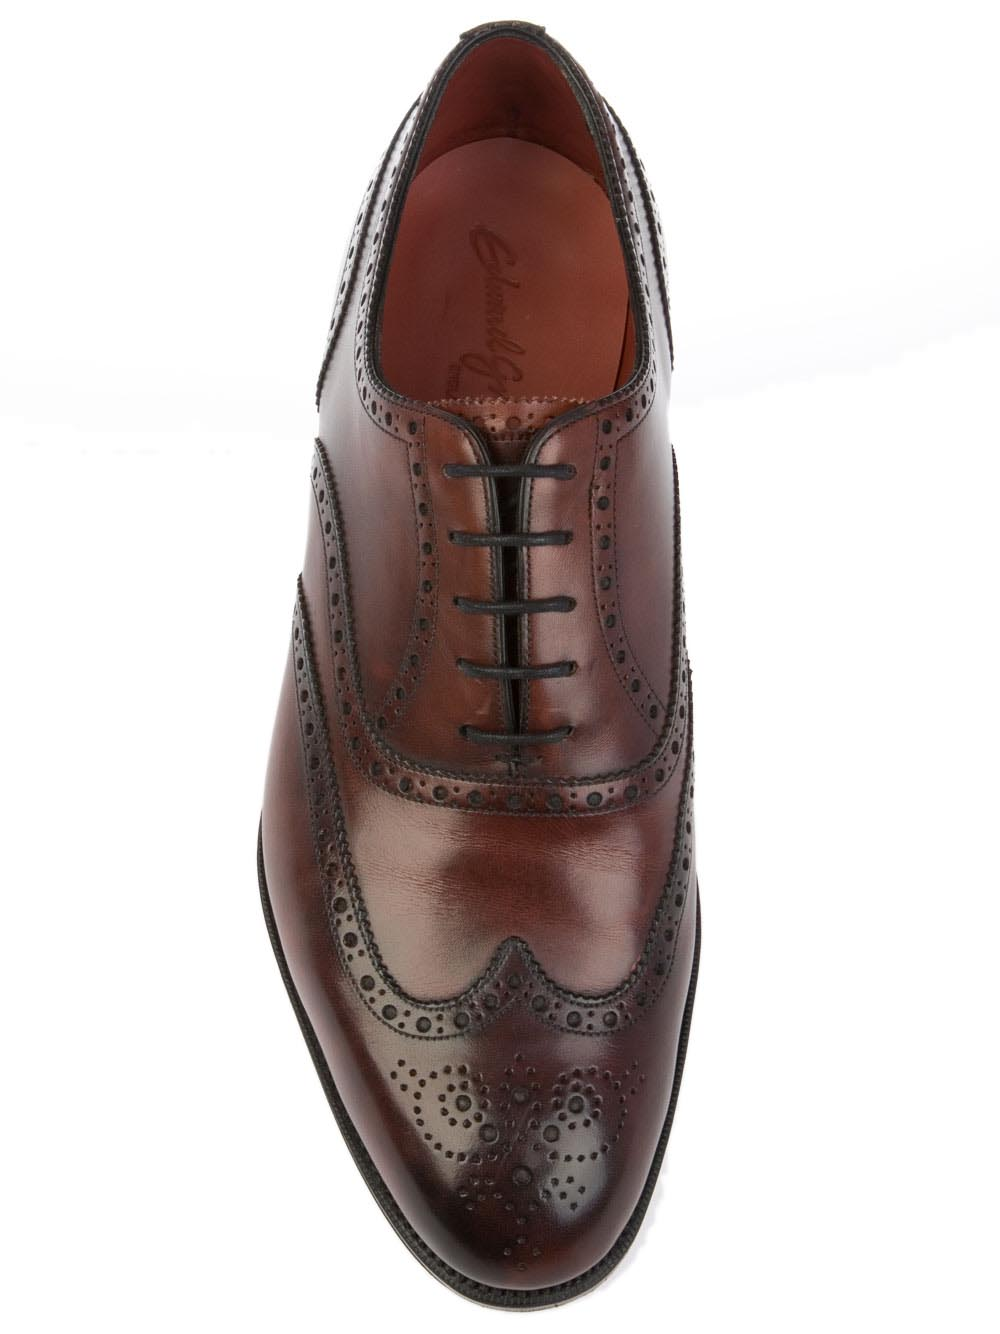 Edward Green Malvern Shoe Burgundy Antique | MALVERN | Botta & B Online Store